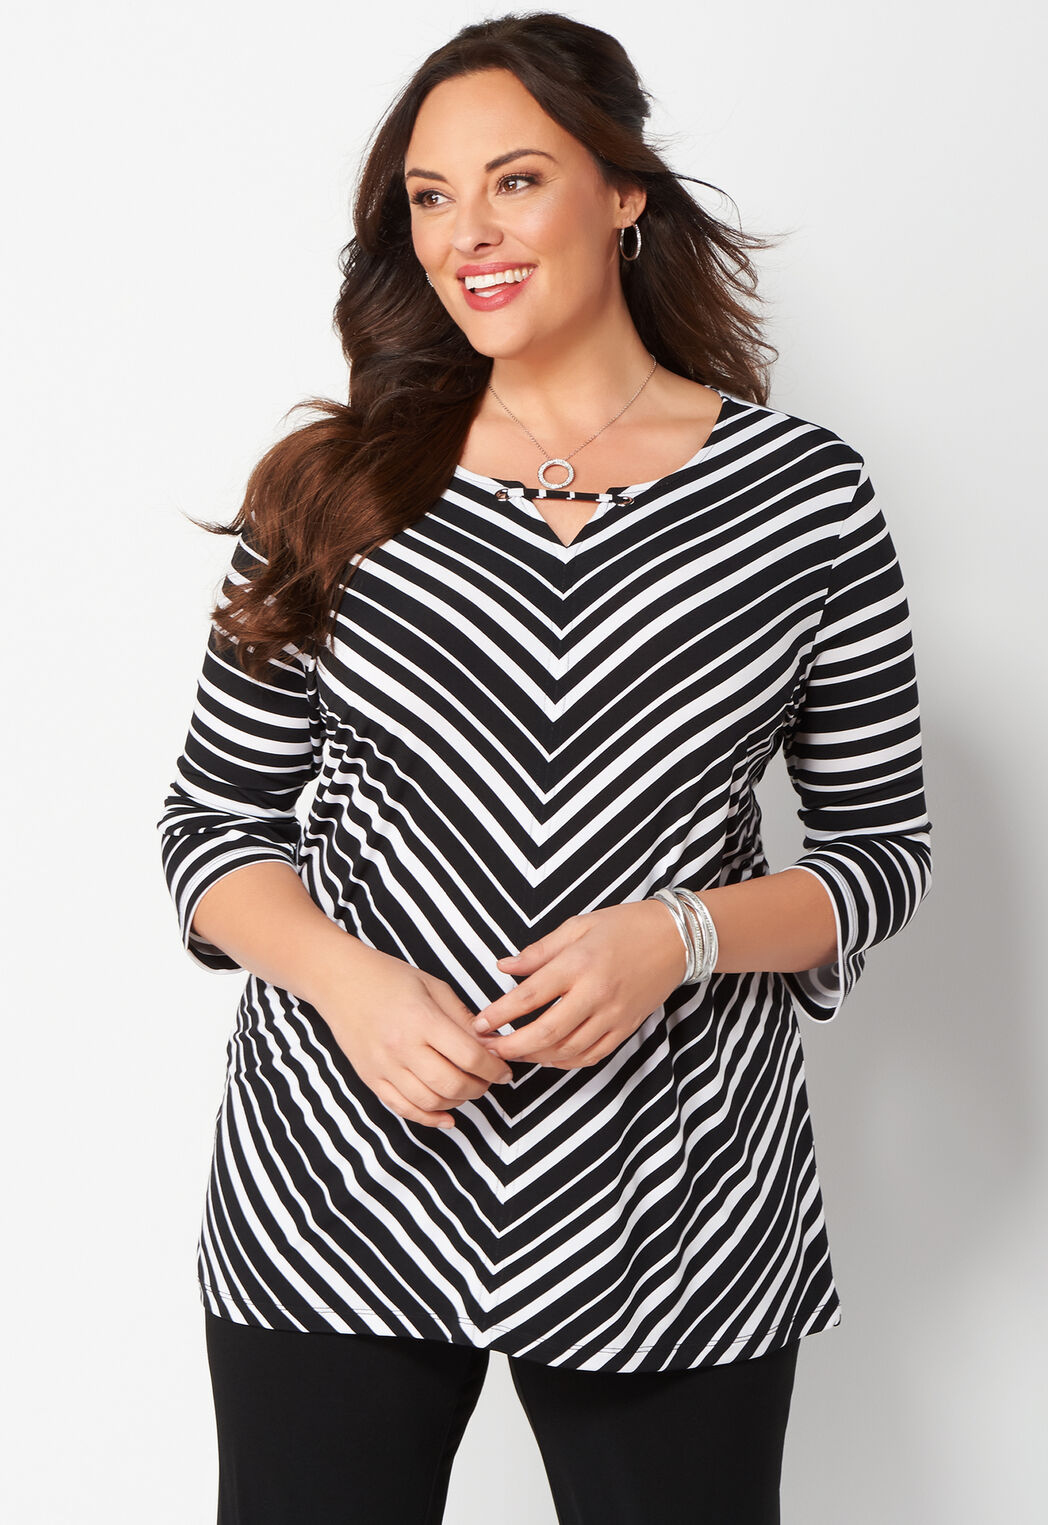 women's easy wear mitred stripe plus size top from christopher